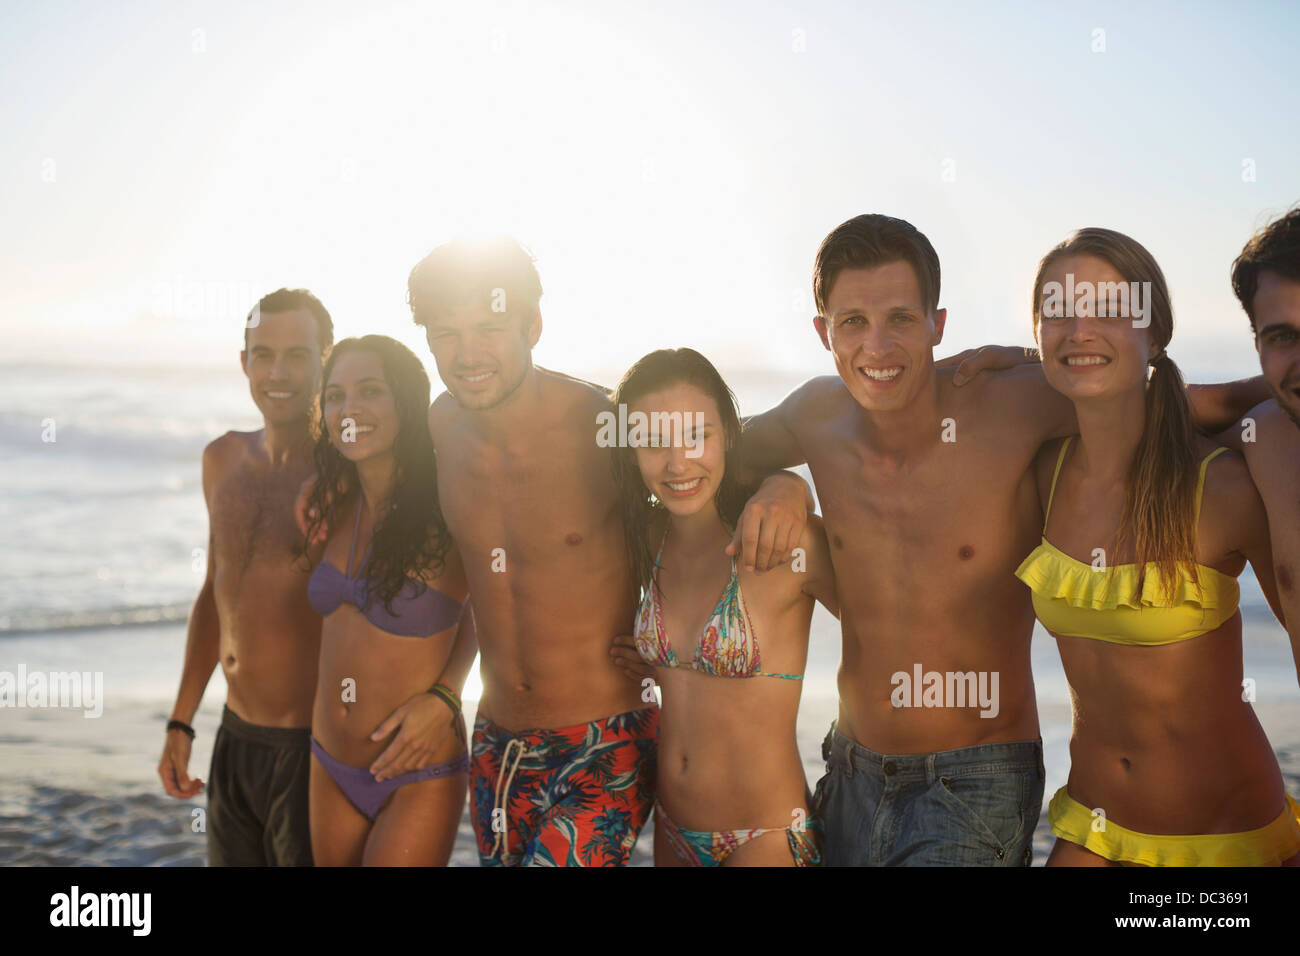 Portrait of friends in bikinis and swim trunks on beach - Stock Image